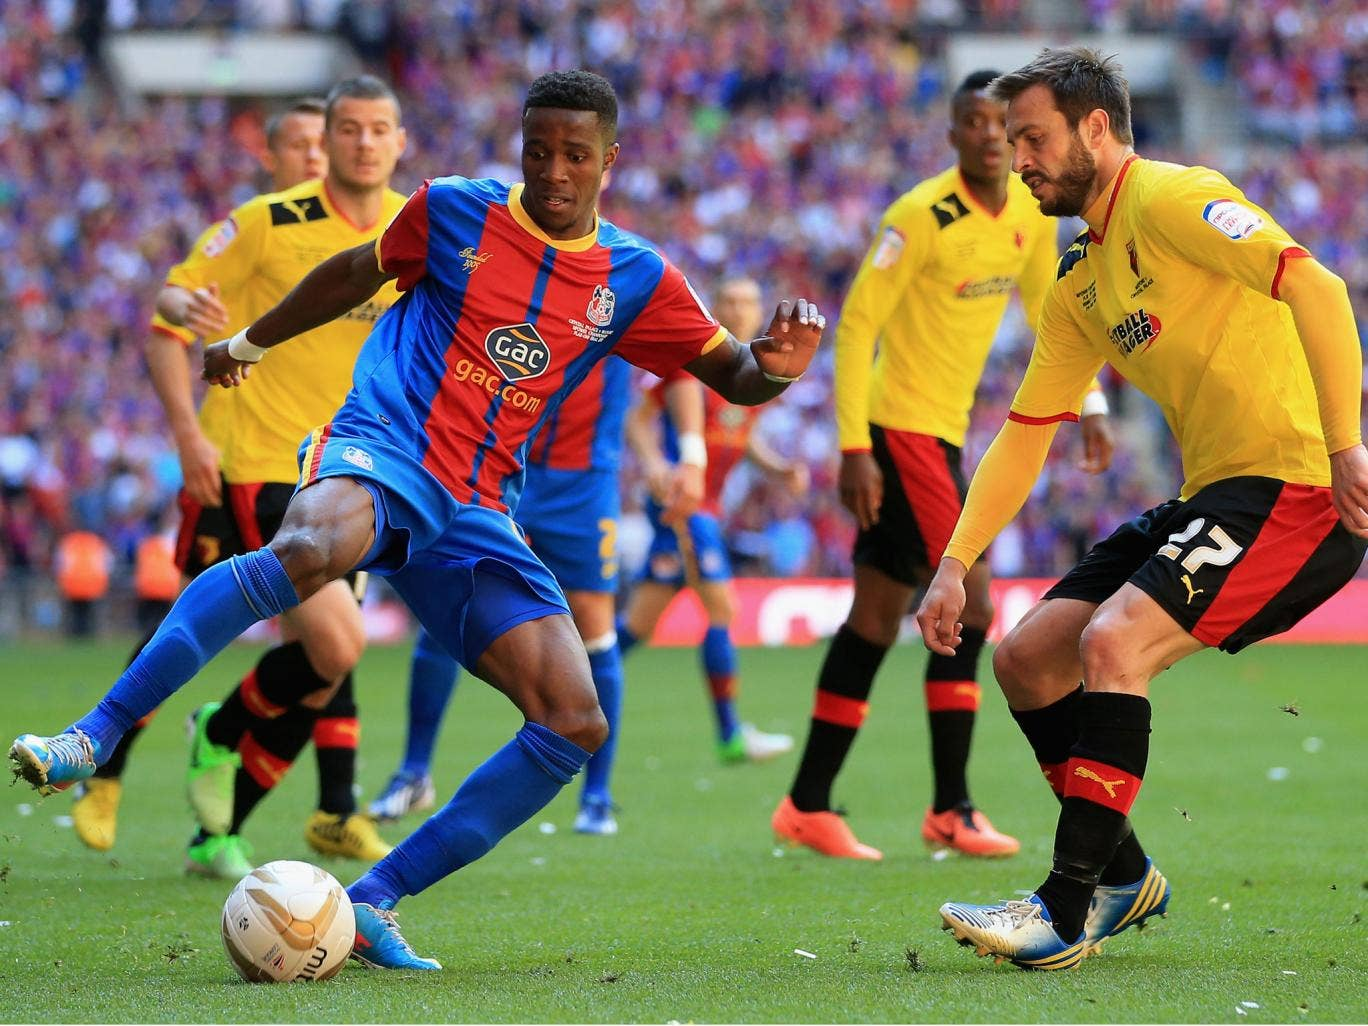 Wilfried Zaha, left, takes on Marco Cassetti, right